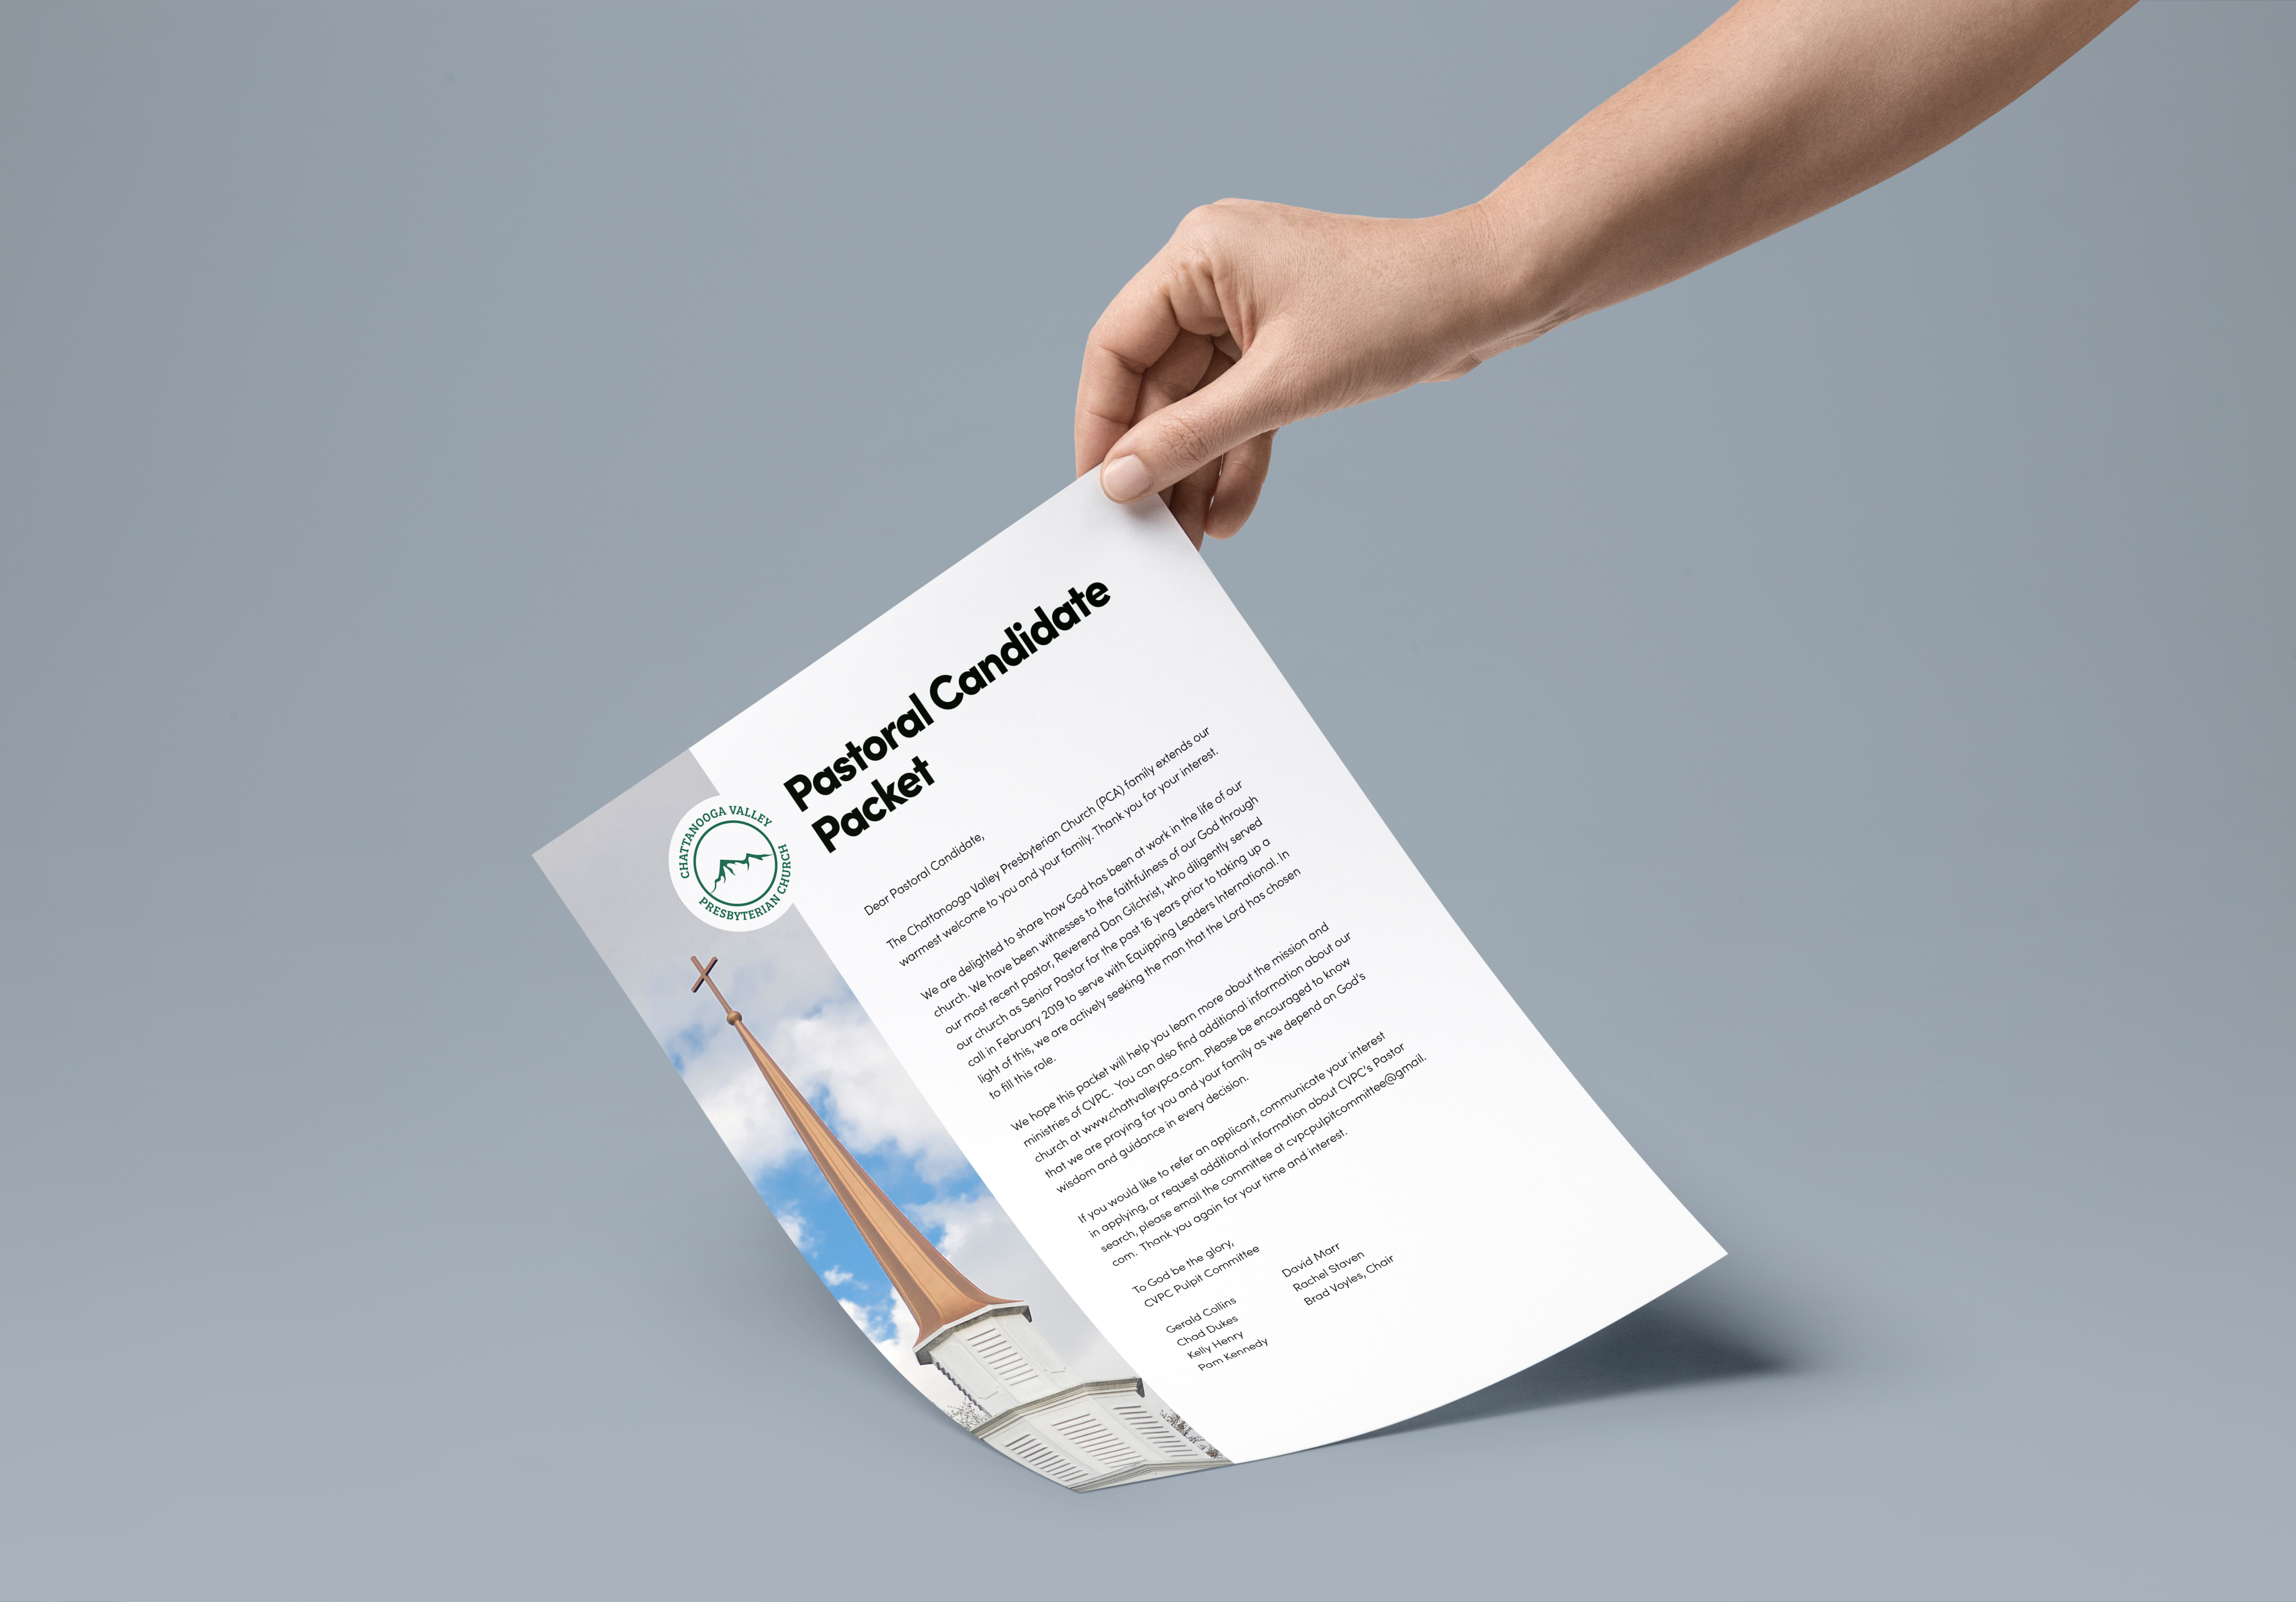 Hand holding front page of a candidate packet for a church. The sheet of paper being held includes a picture of the church, church logo, and welcome letter from hiring committee.